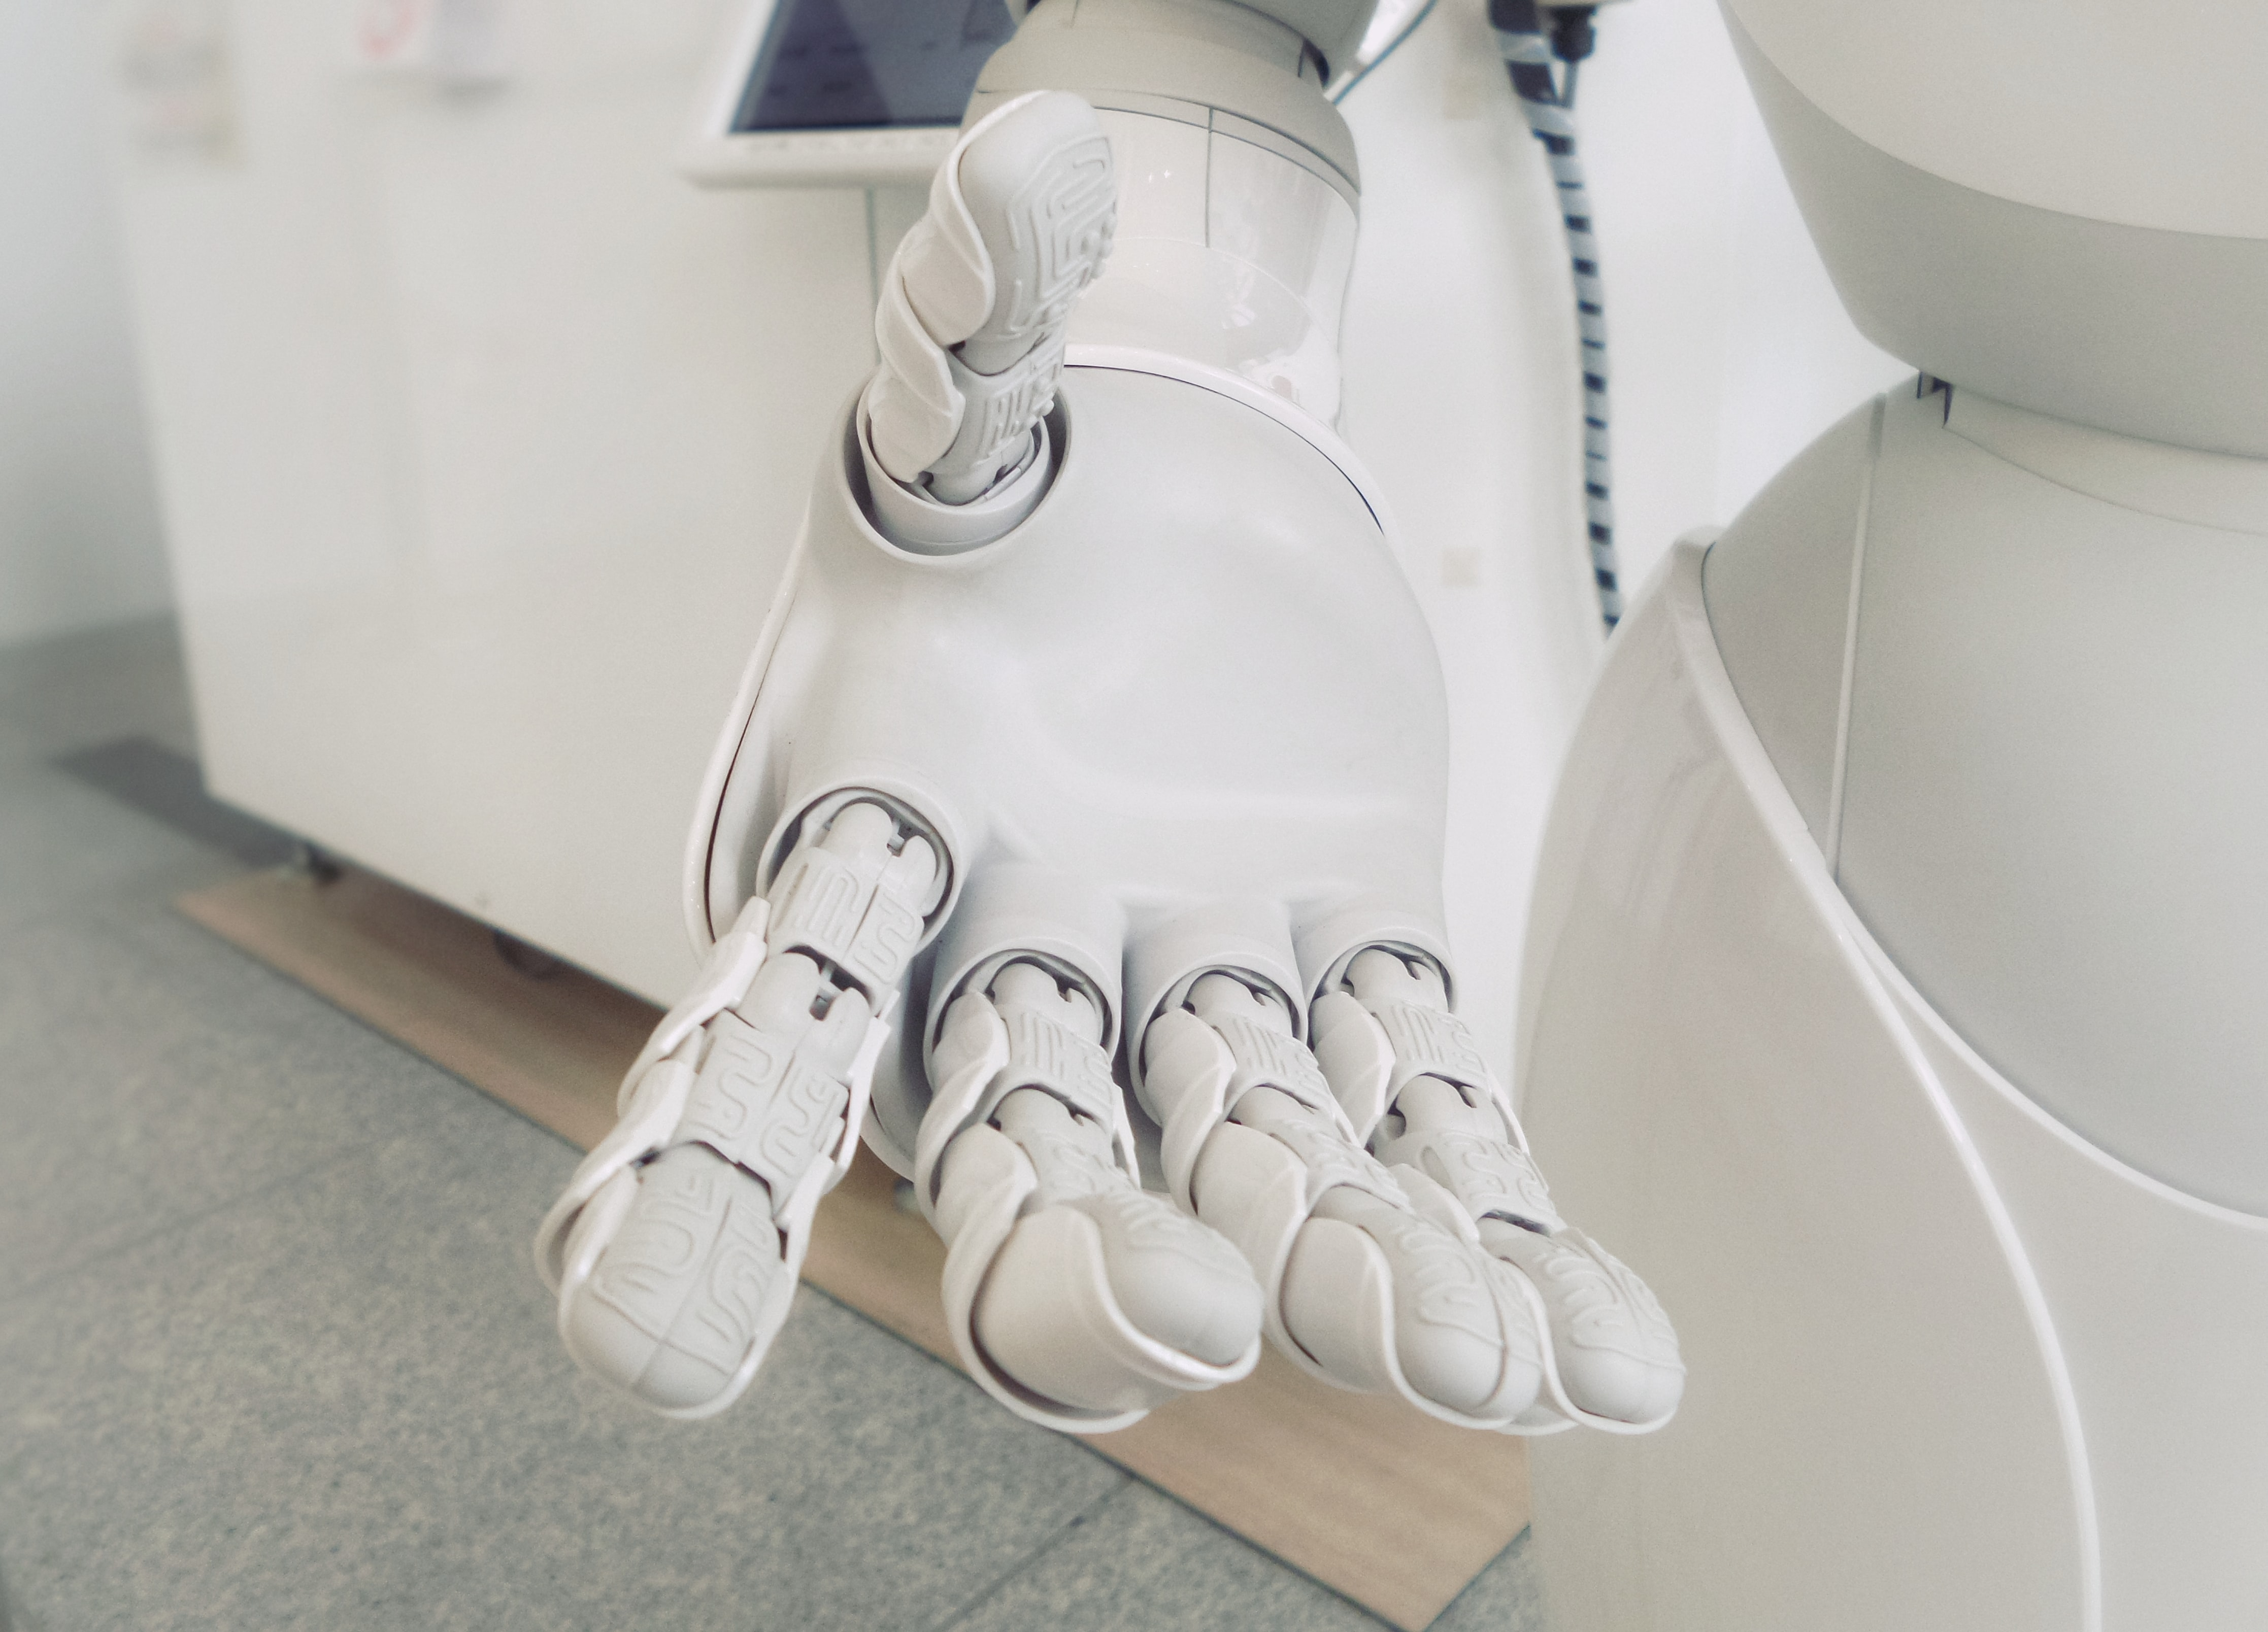 Robot hand stretched out to you